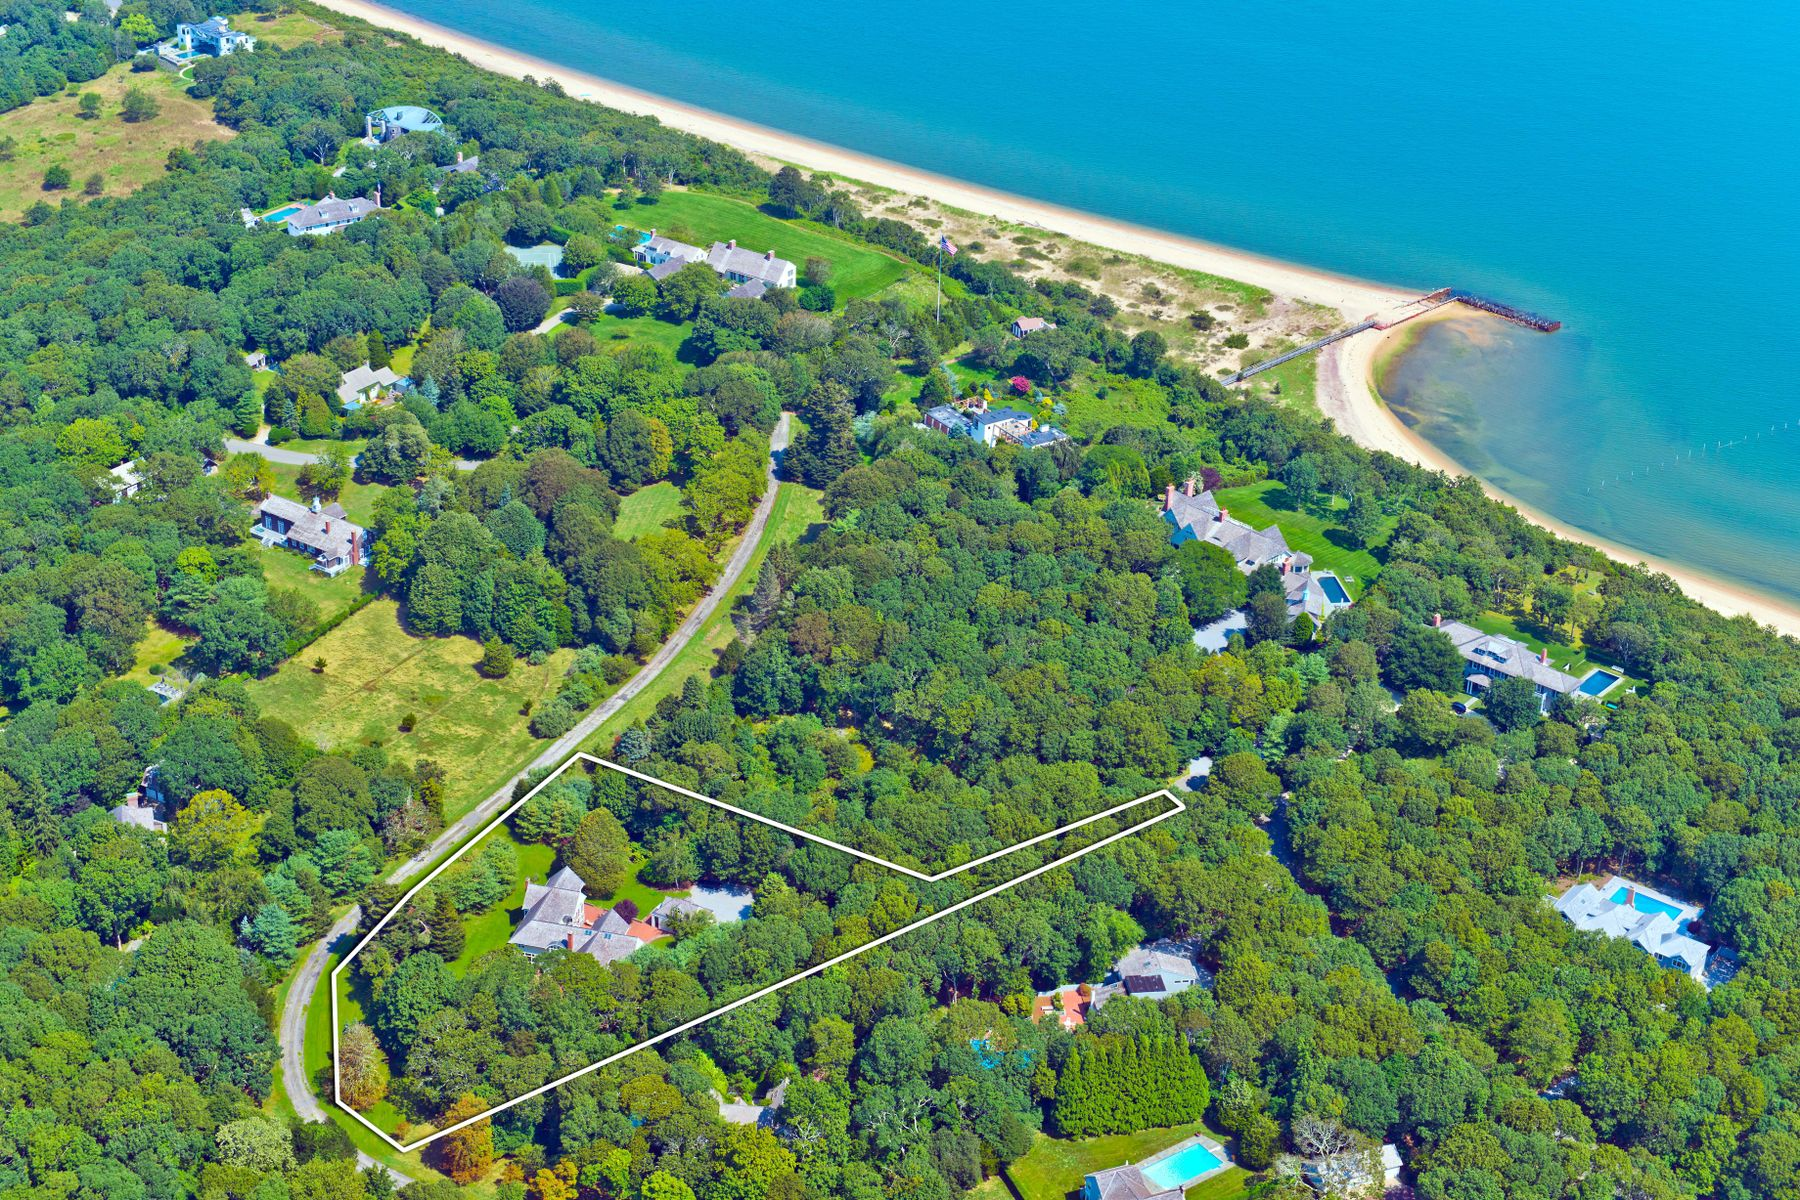 Single Family Home for Active at BELL ESTATE TRANSITIONAL 49 Broadview Road Amagansett, New York 11930 United States